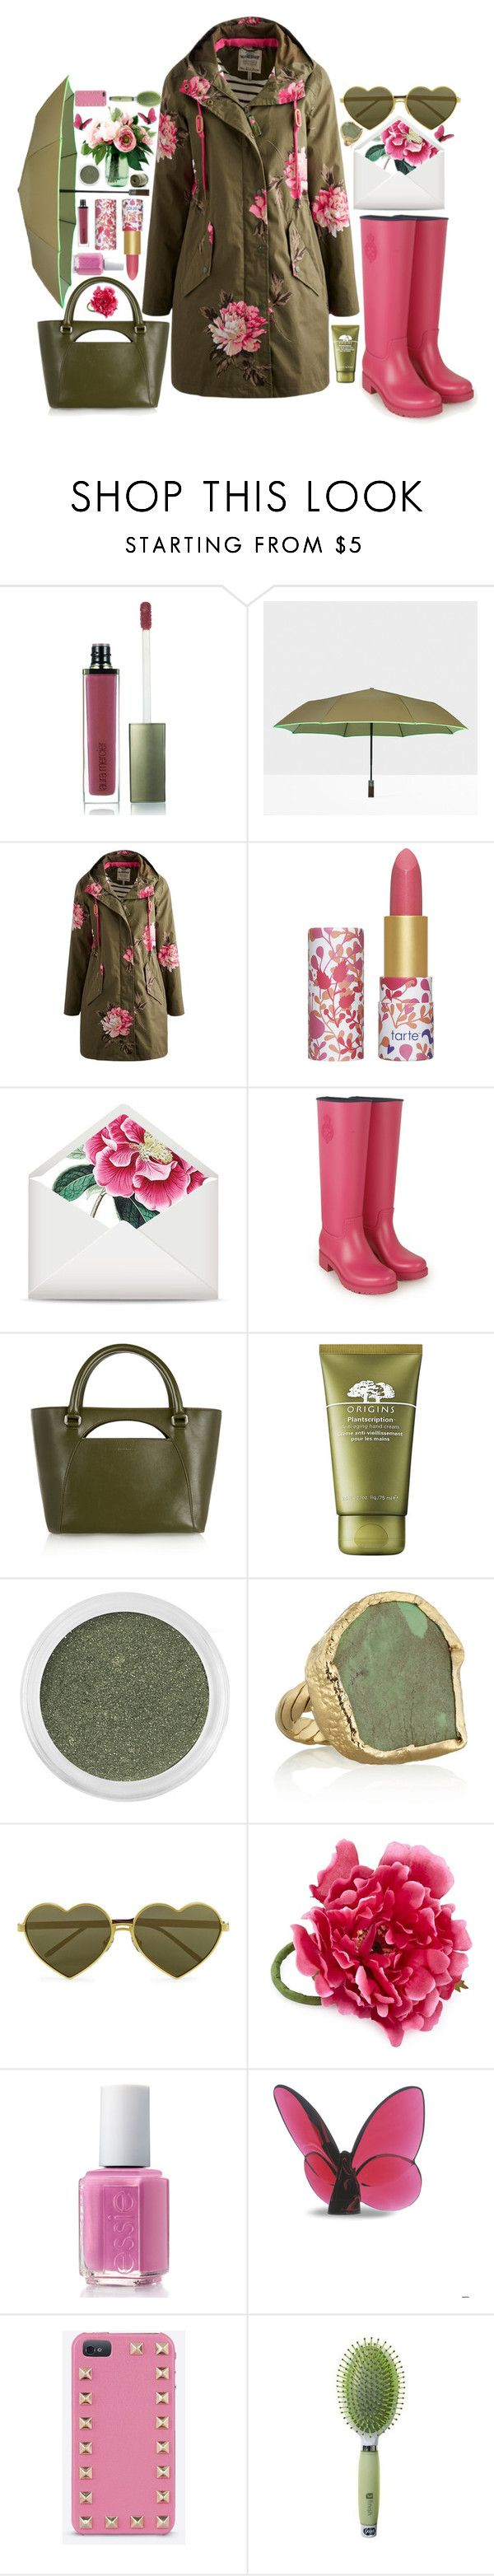 """Peonia"" by living-colorfully ❤ liked on Polyvore featuring Laura Mercier, Hunter, Joules, tarte, Polo Ralph Lauren, J.W. Anderson, Origins, Bare Escentuals, Dara Ettinger and Wildfox"